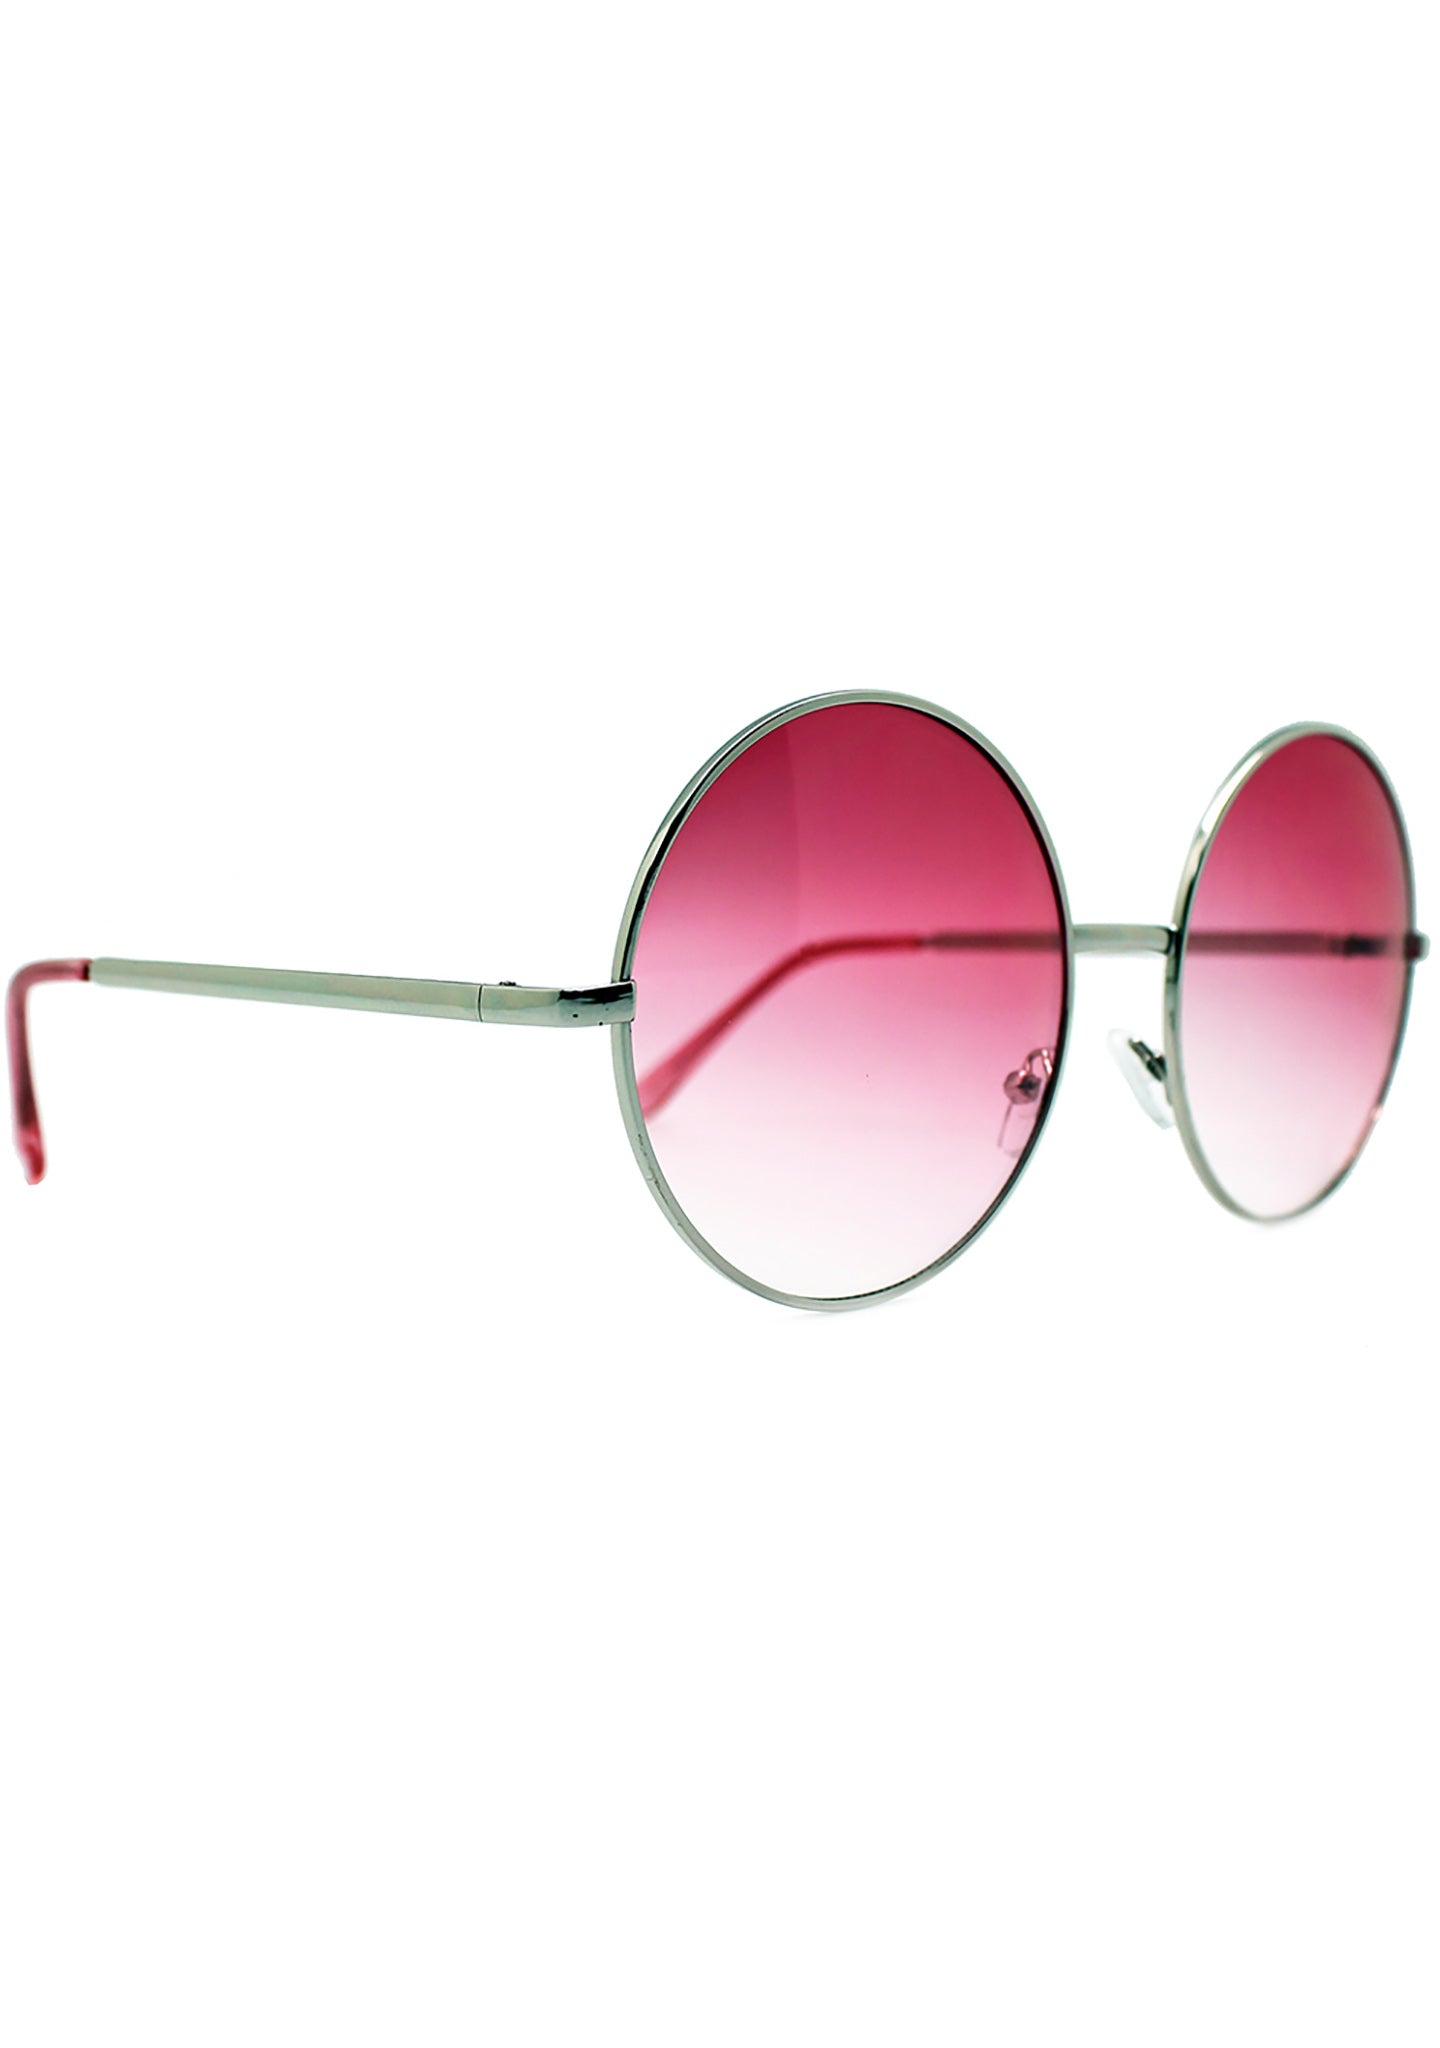 7 LUXE Sunrise Fade Round Sunglasses Silver/Red